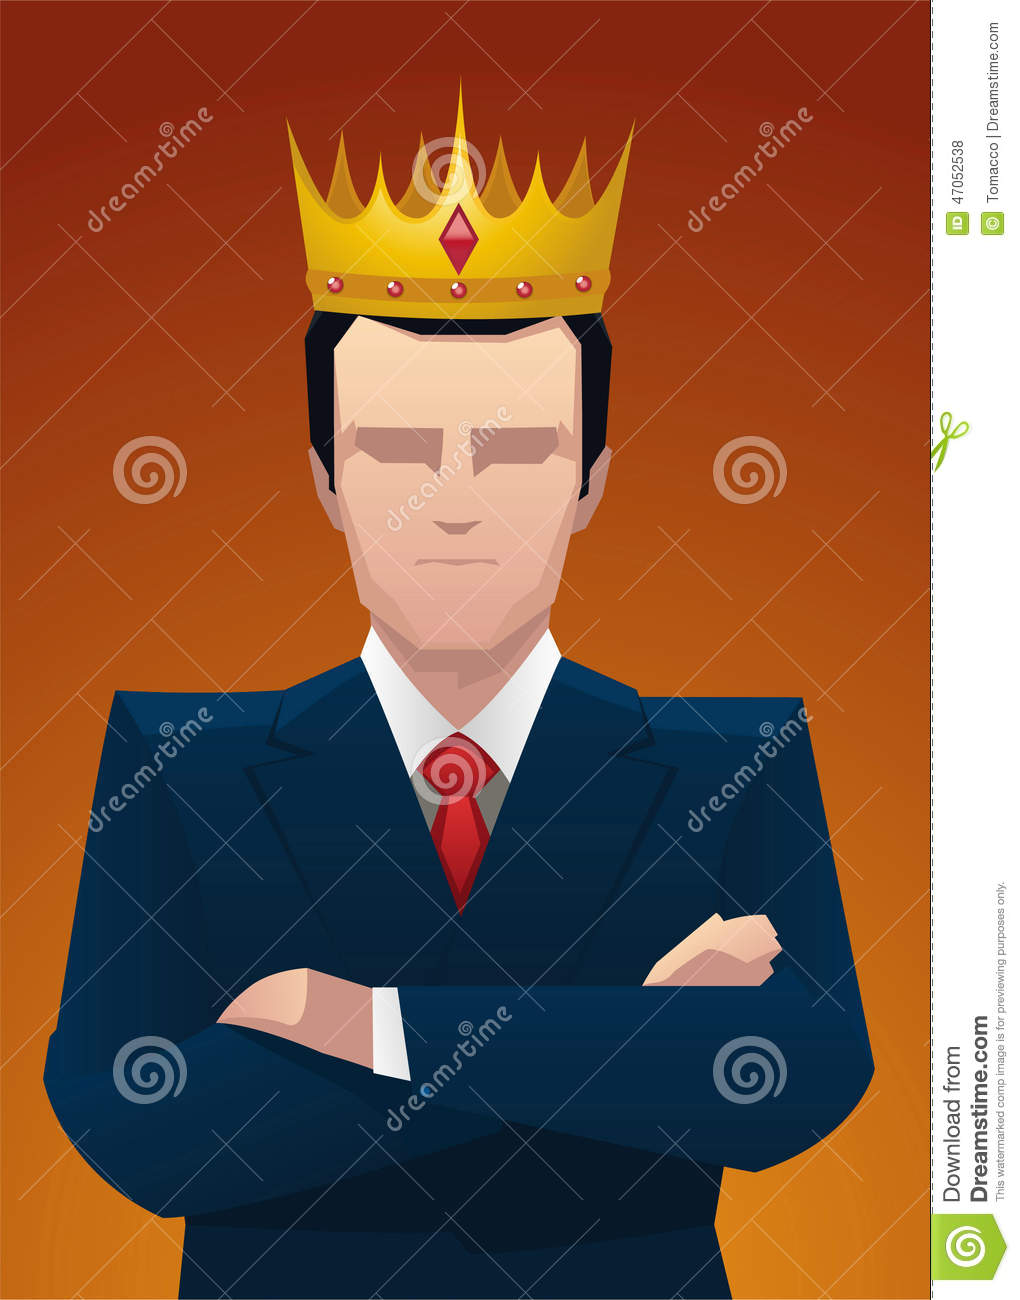 Business King Proud Confident Businessman Wearing Crown Stock Illustration Illustration Of Garment Social 47052538 300x378 cartoon vector old fantasy medieval king monarch sovereign. dreamstime com